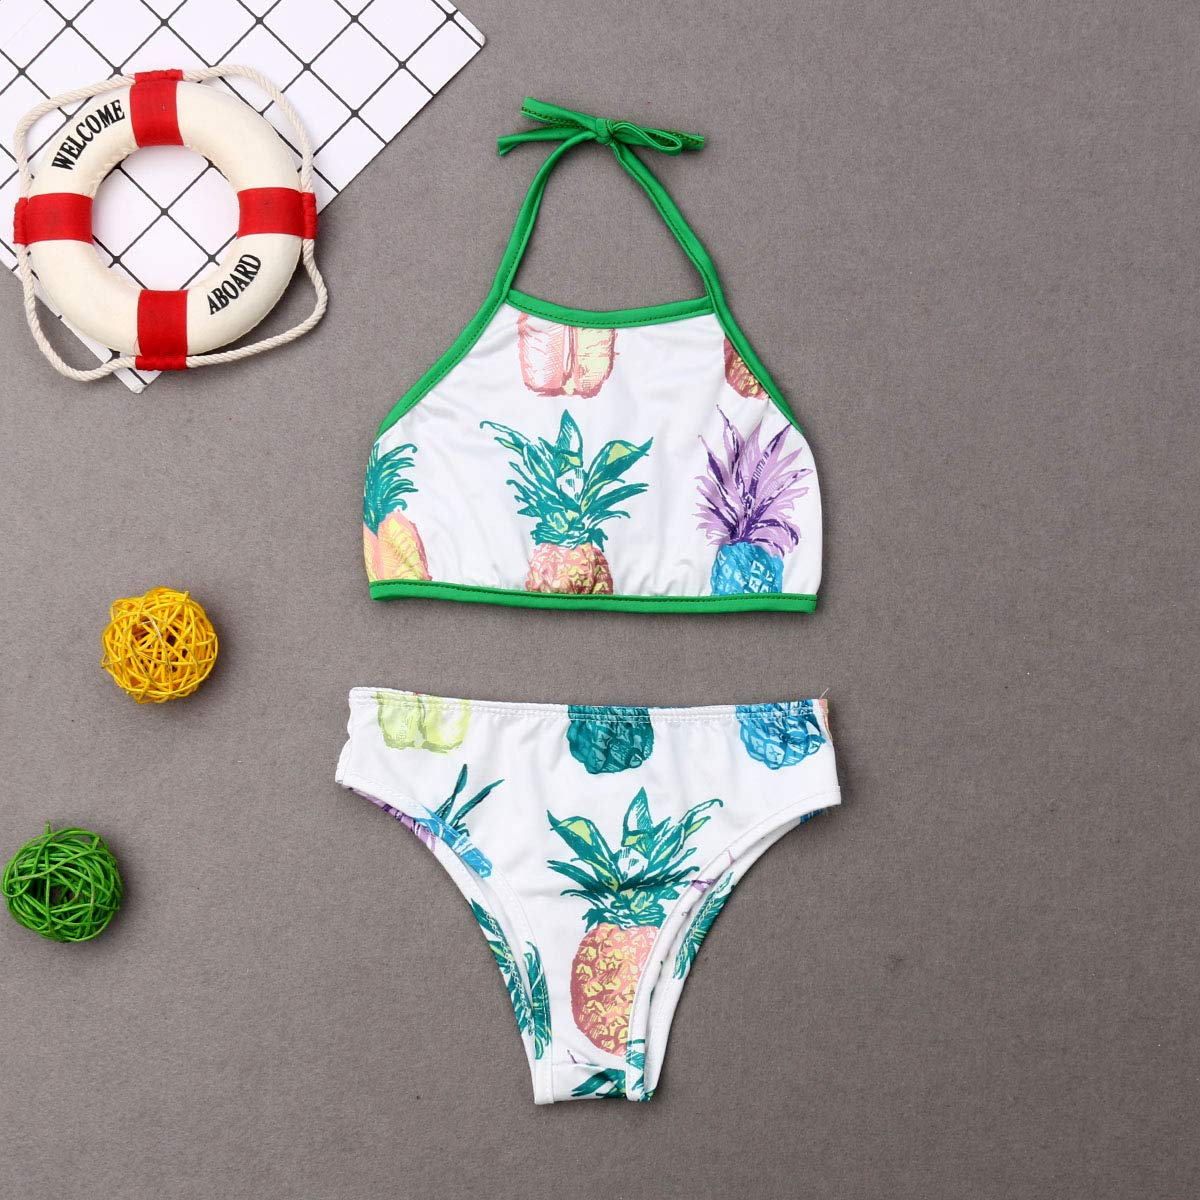 AMILIEe Family Matching Swimwear Mommy Daddy and Me One Piece Swimsuit Pineapple Print 2019 Bathing Suit